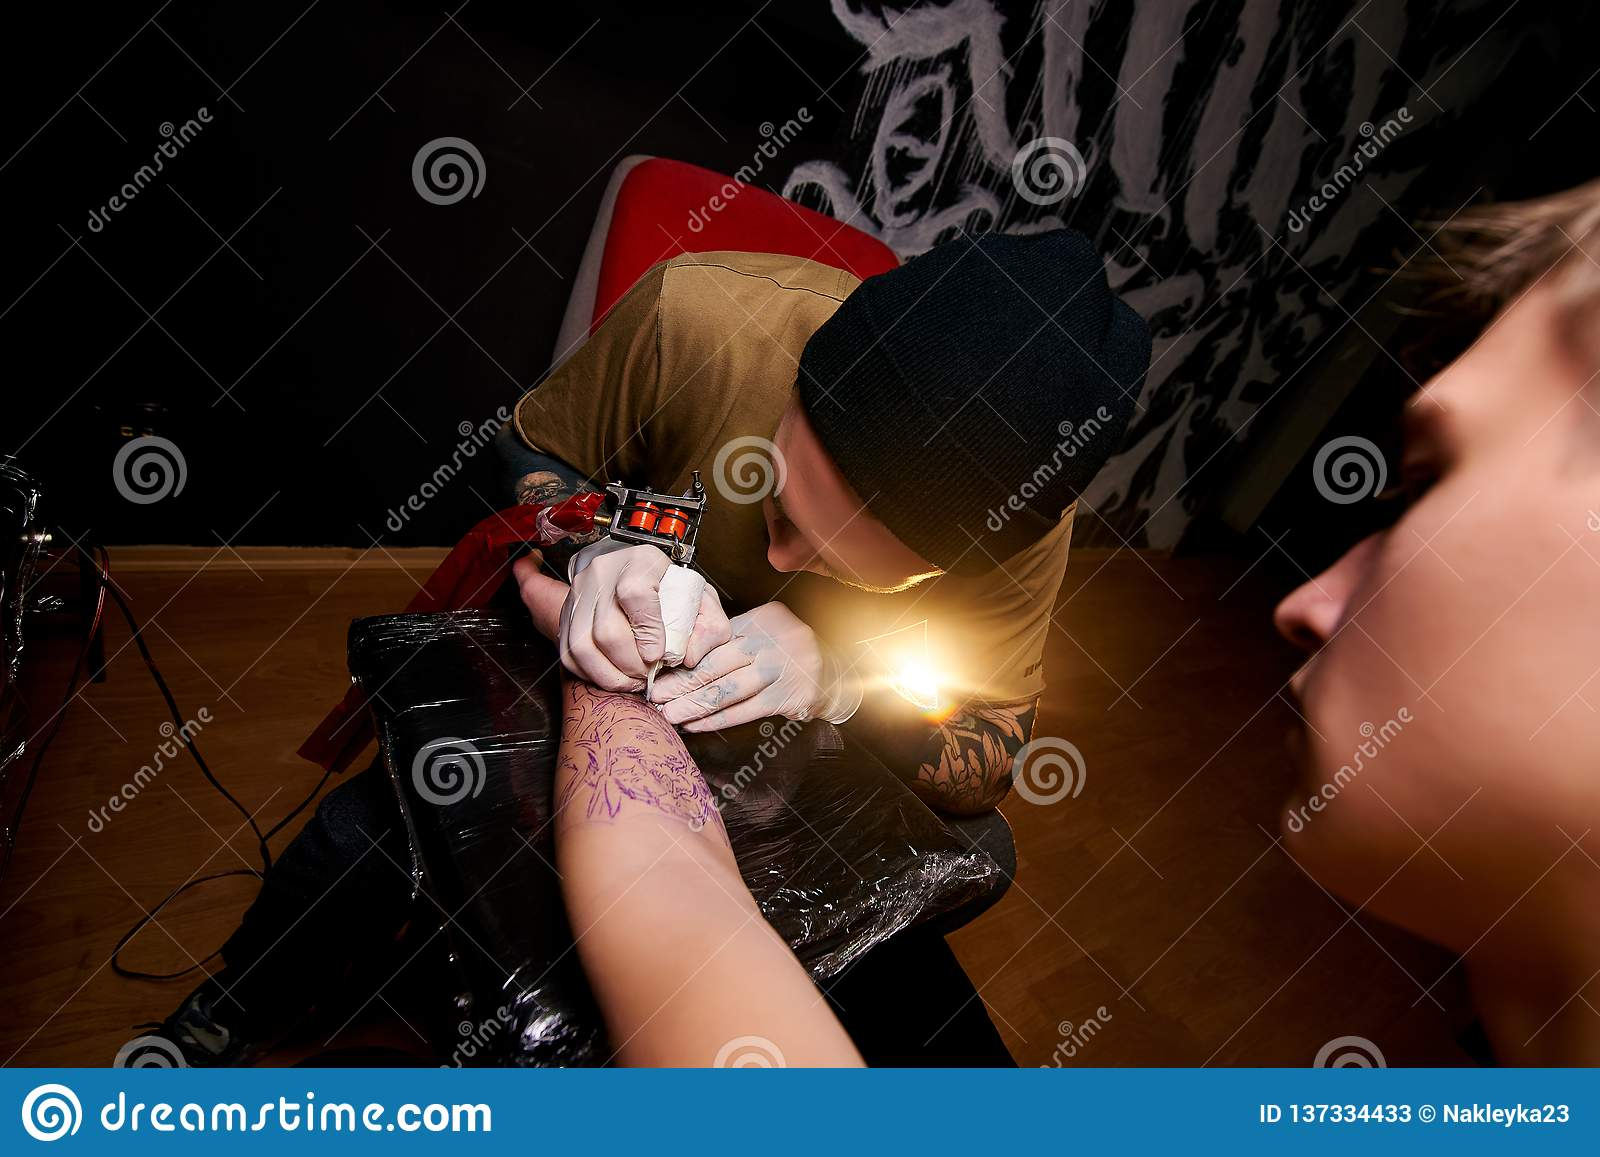 Handsome young guy in a black hat and with tattoos, beats a tattoo on his arm, tattoo salon